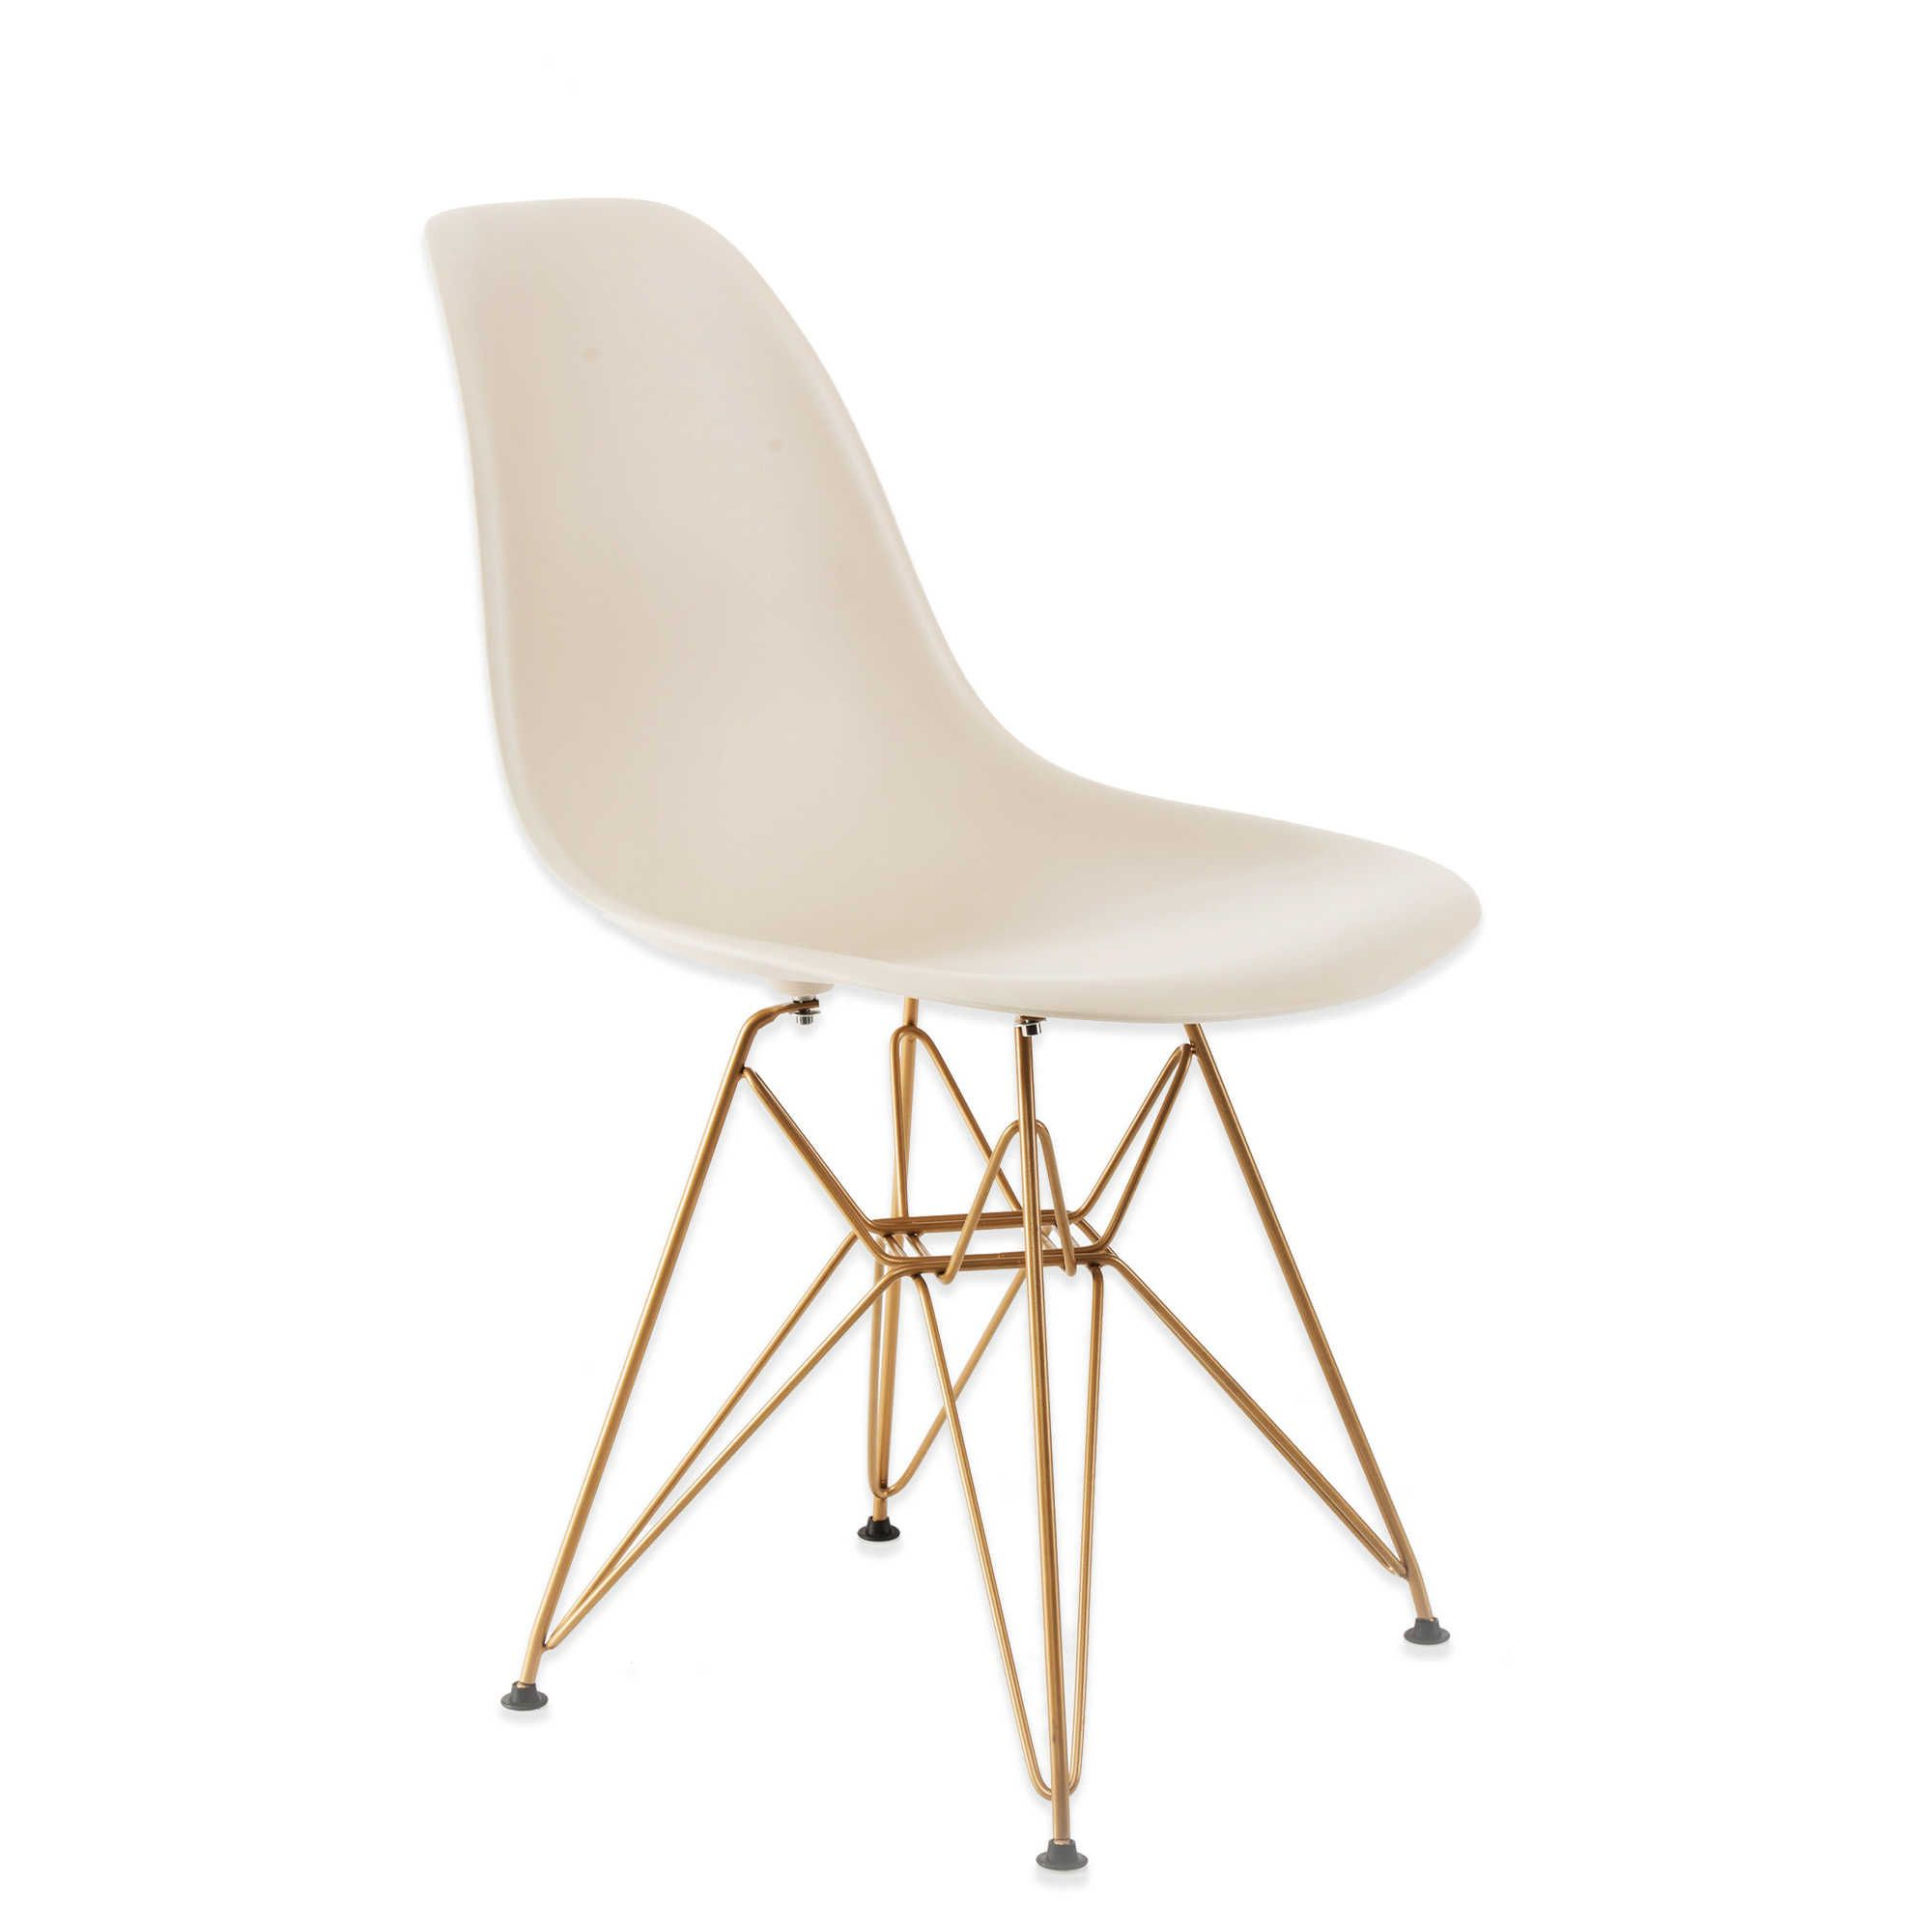 Beau American Atelier Banks Chair With Gold Legs In Beige